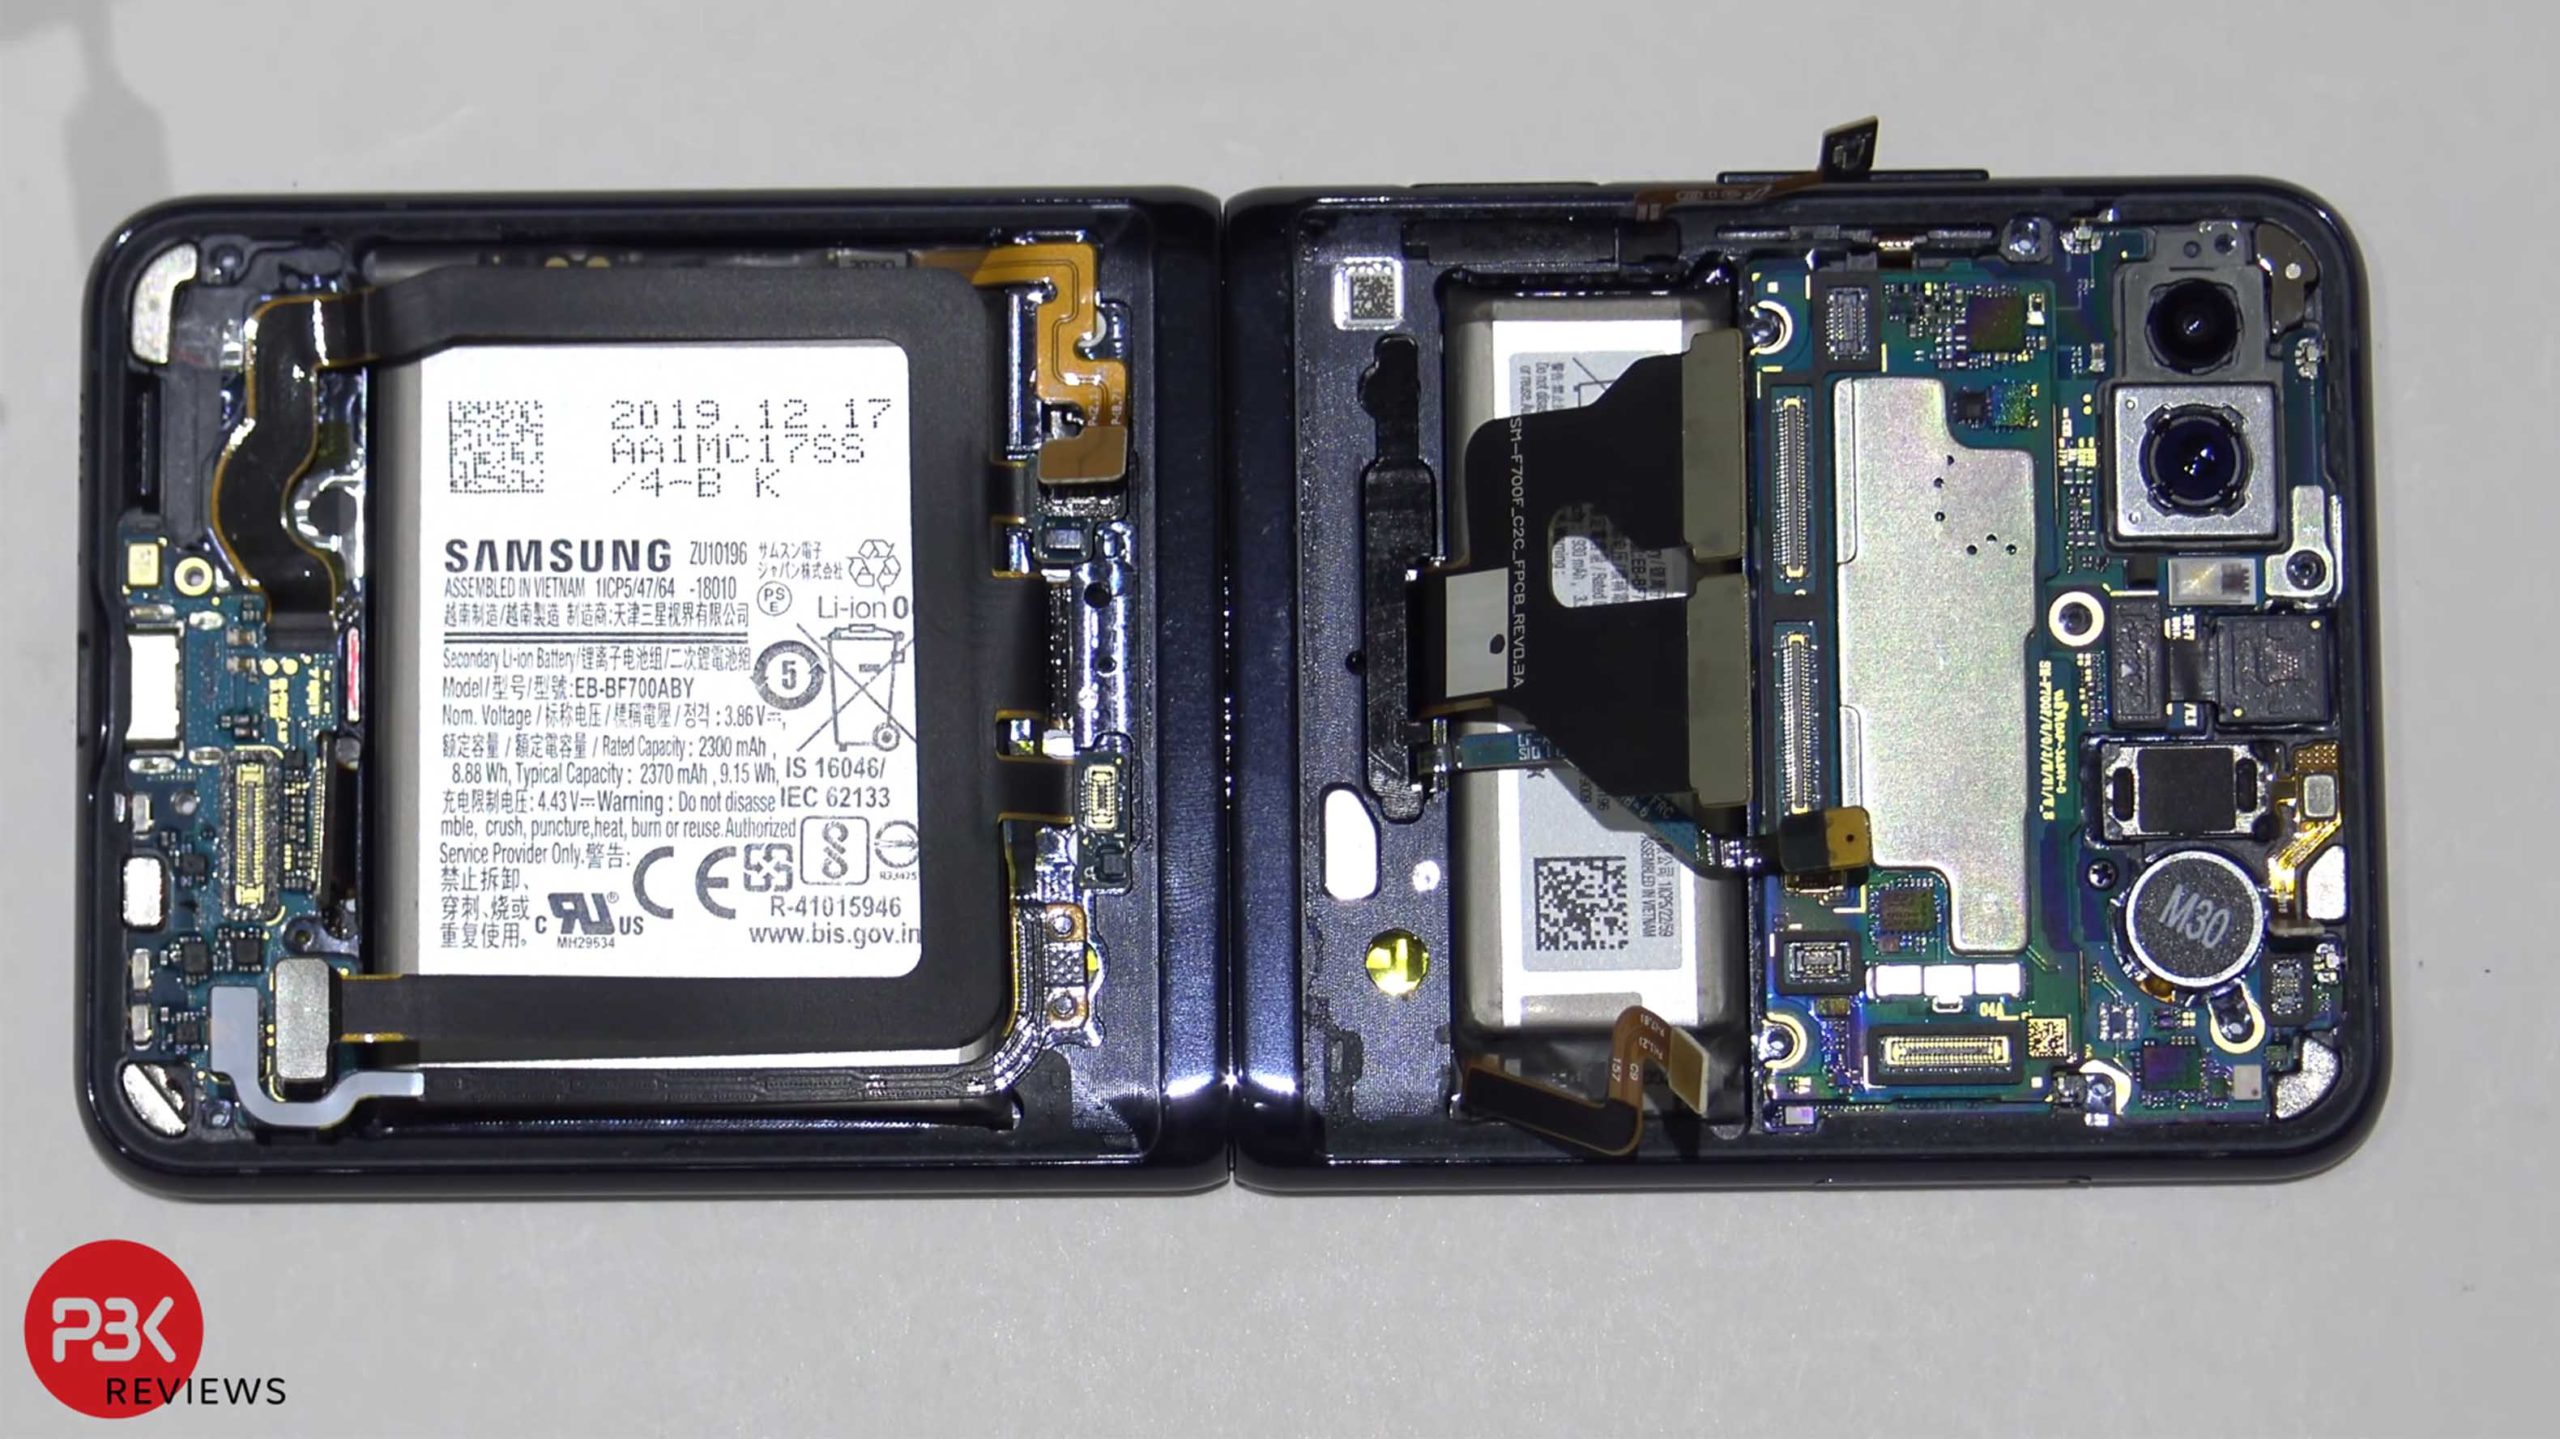 Inside of the Samsung Galaxy Z Flip